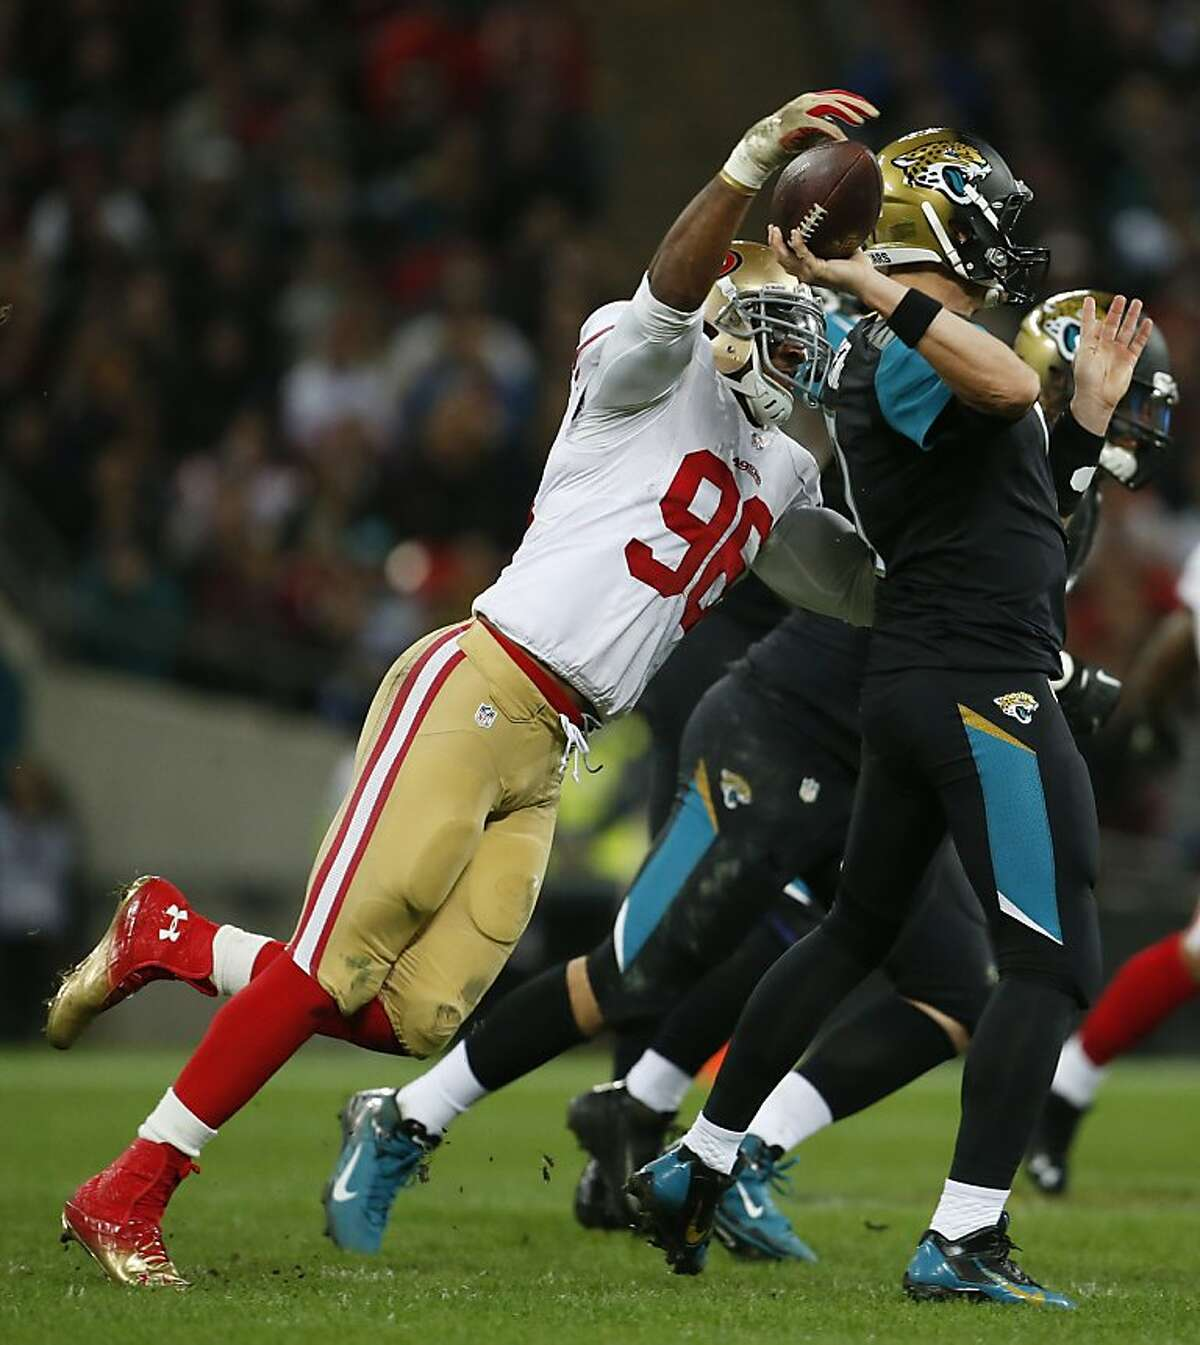 San Francisco 49ers linebacker Corey Lemonier (96) tries to knock the ball out of Jacksonville Jaguars quarterback Chad Henne's hand during the first half of an NFL football game at Wembley Stadium, London, Sunday, Oct. 27, 2013.